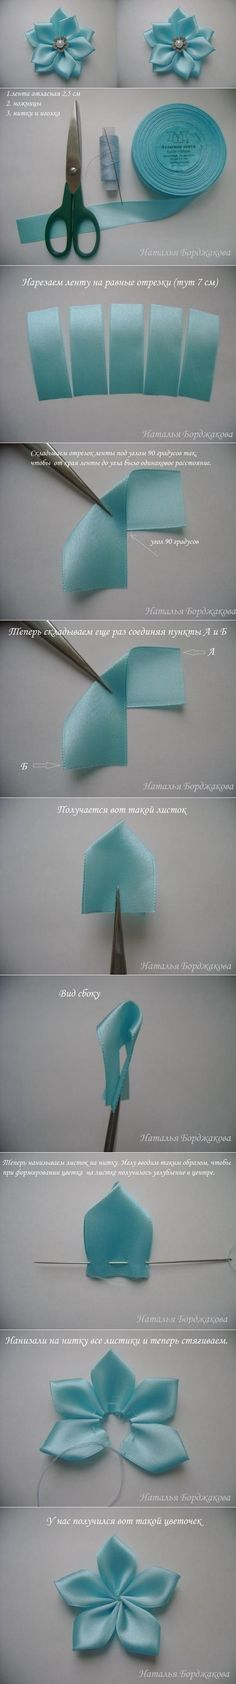 DIY Pointed Petals Ribbon Flower DIY Projects